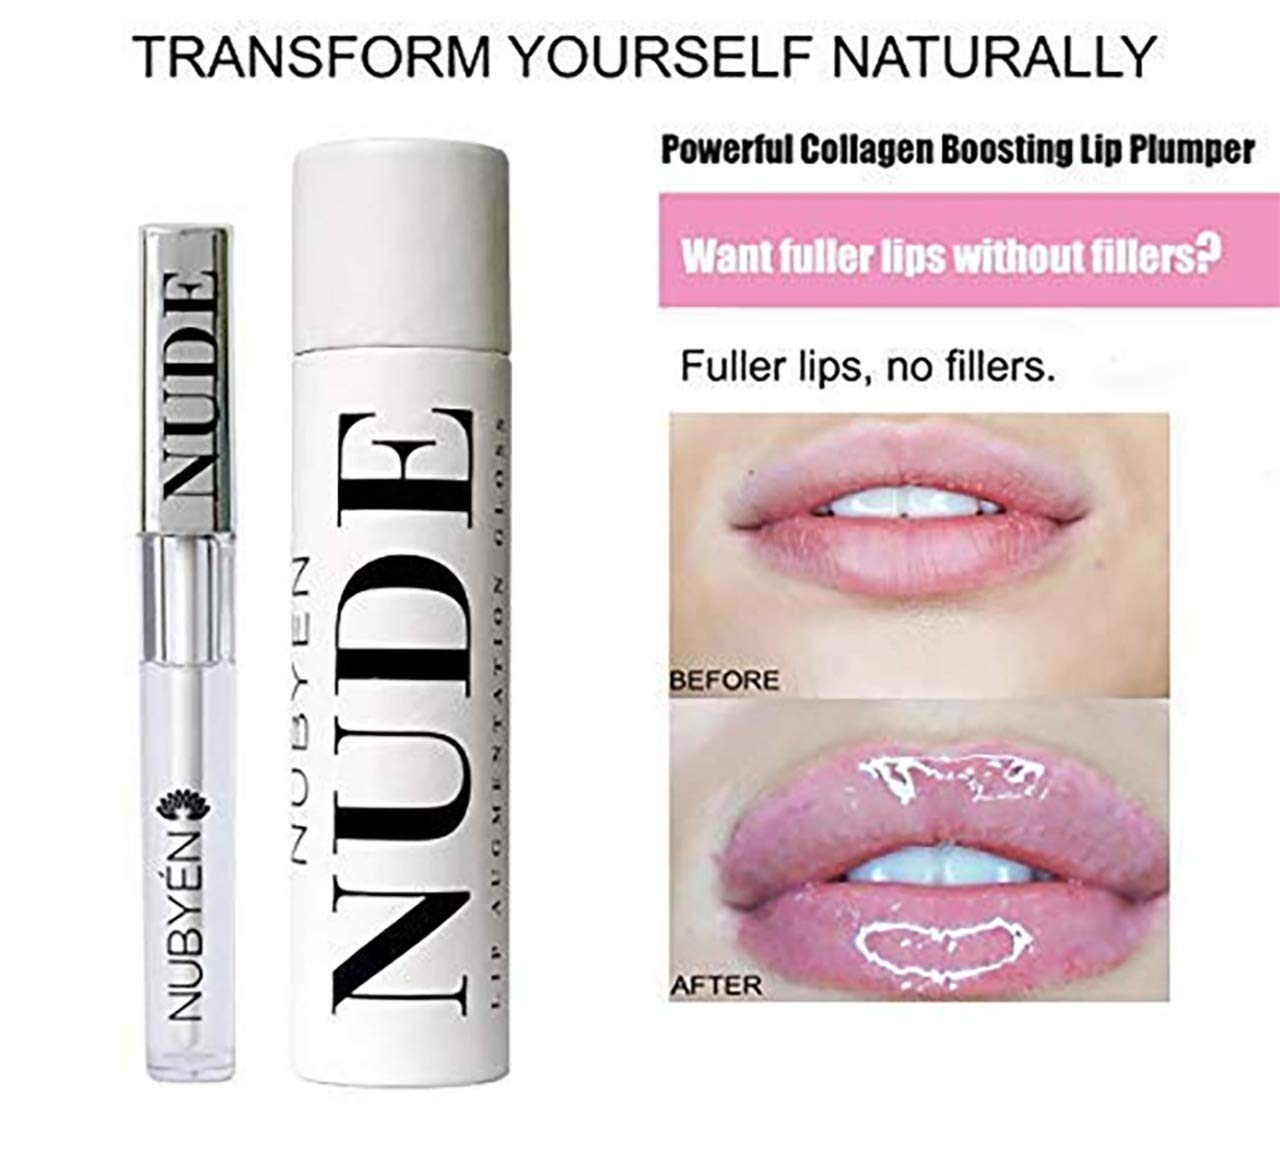 Lip Plumper - Get Instantly Sexy Lips without lip Filler Injection - Organic Lip Plumping Lipgloss for Fuller & Hydrated Lips, Natural Lip Enhancer LIP GLOSS by NUBYEN MINDFUL BEAUTY